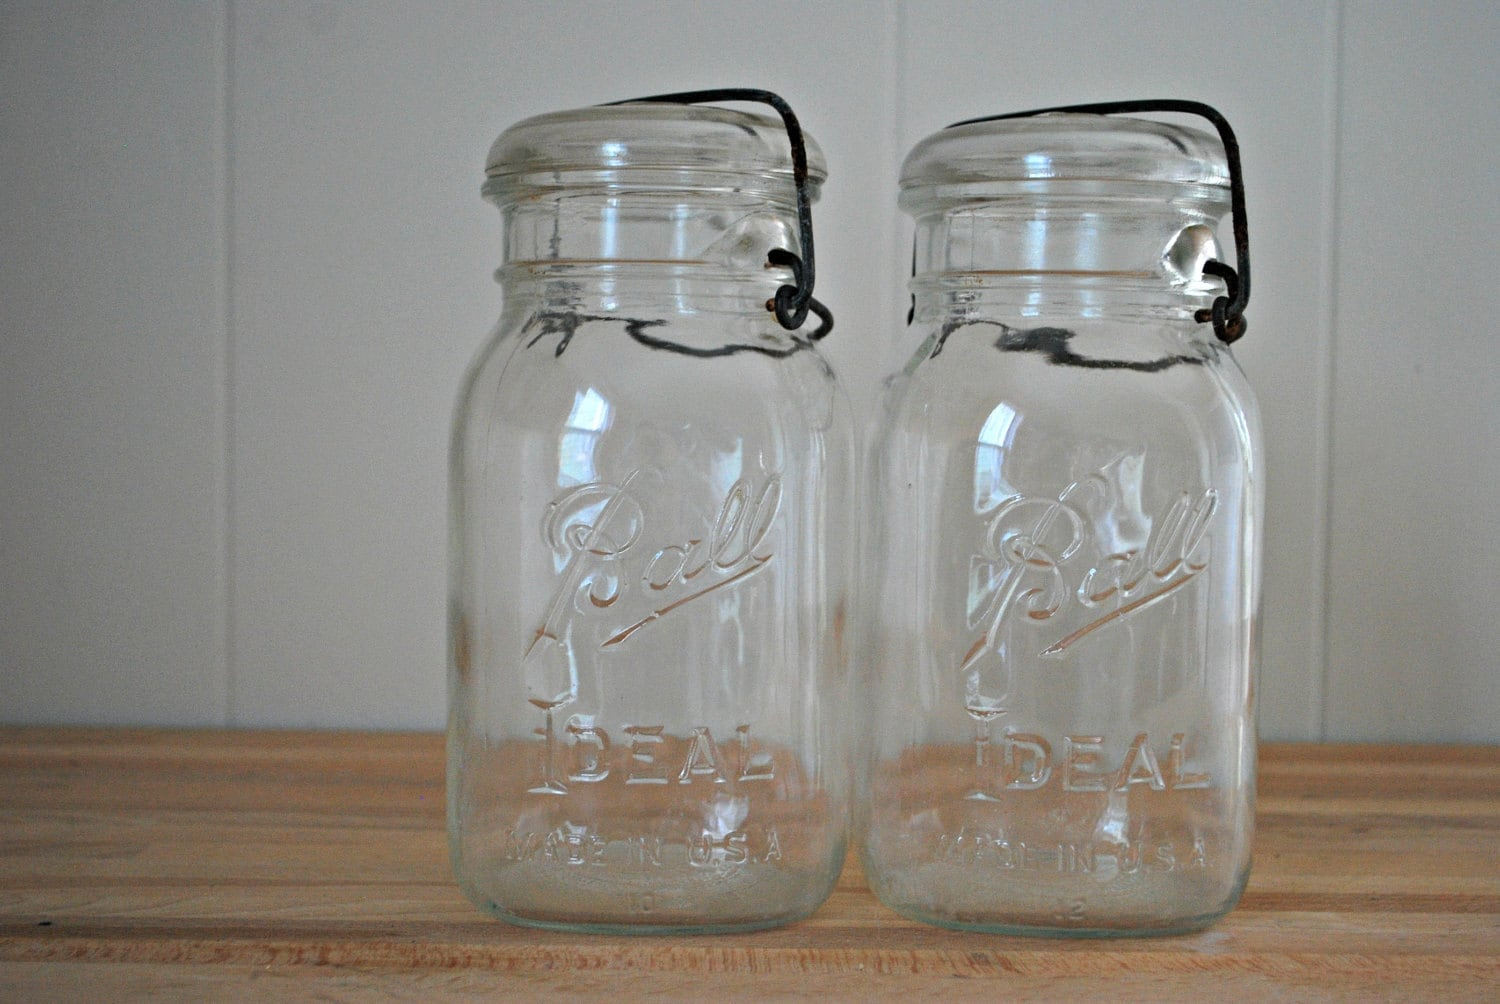 ball ideal jar dating Do you know how i can use these vintage jars  8 quart-sized blue perfect masons, ball ideal, atlas  here is a site that is great for dating your ball.